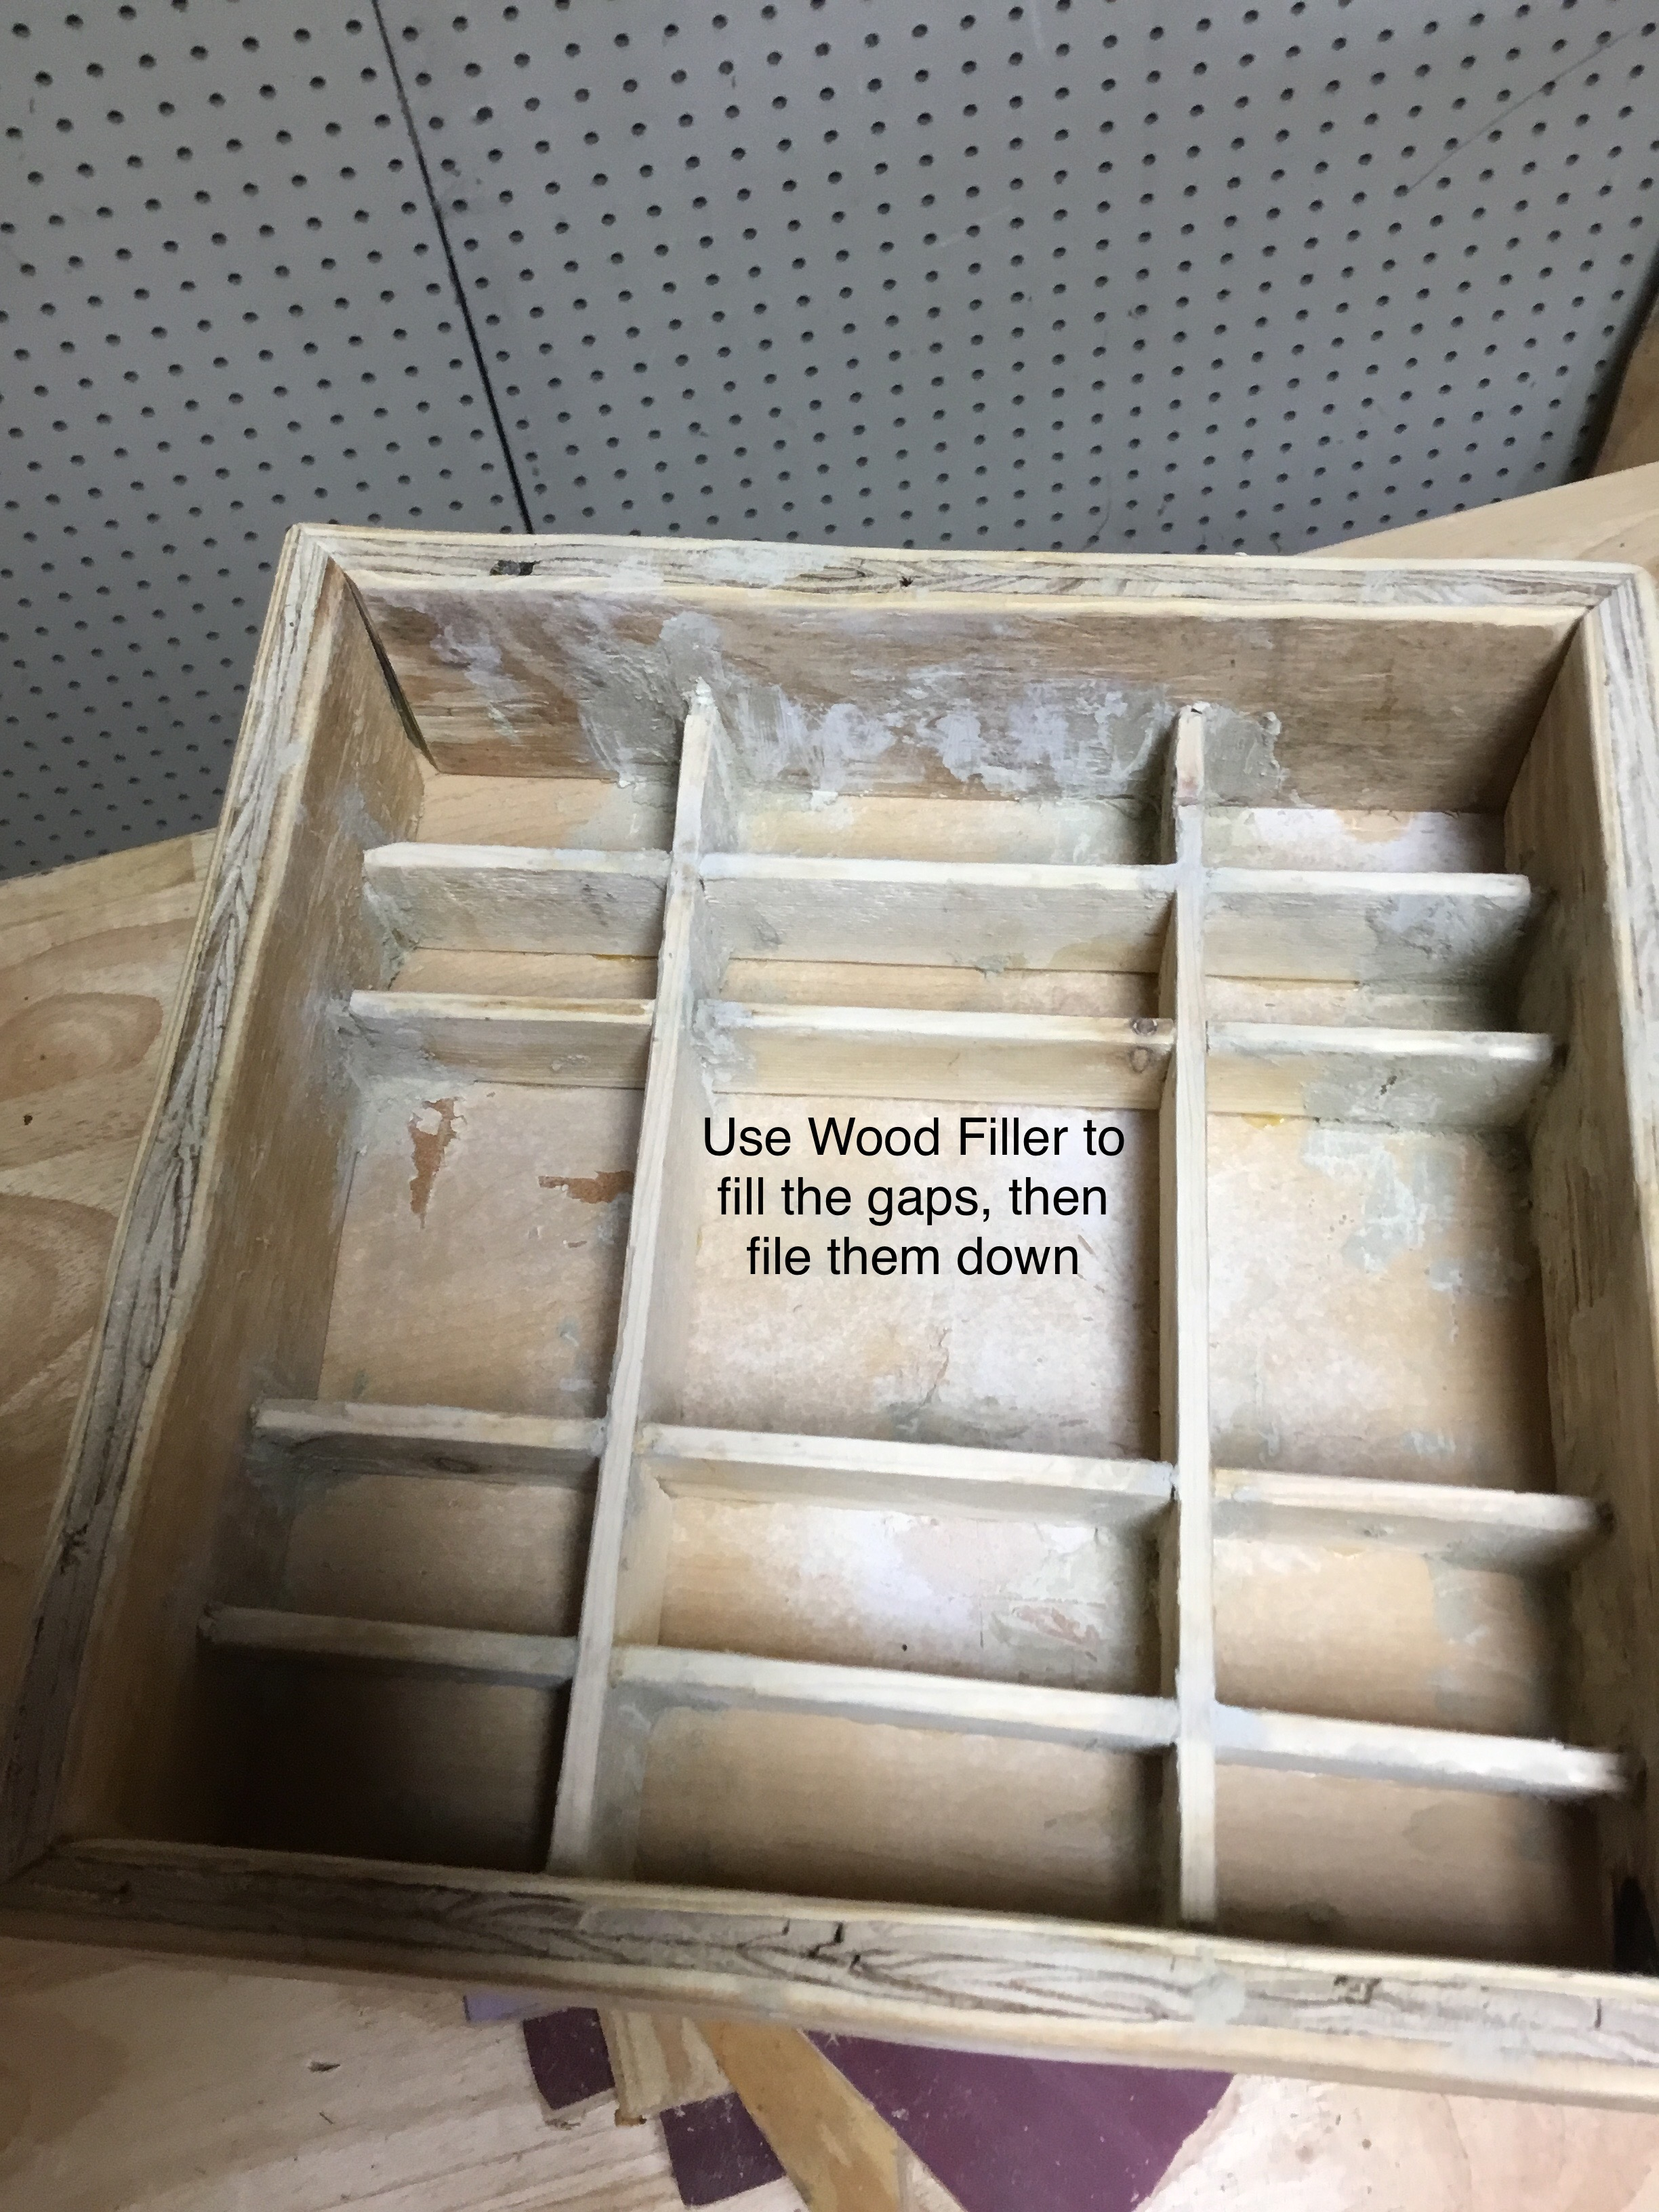 Picture of Wood Filler